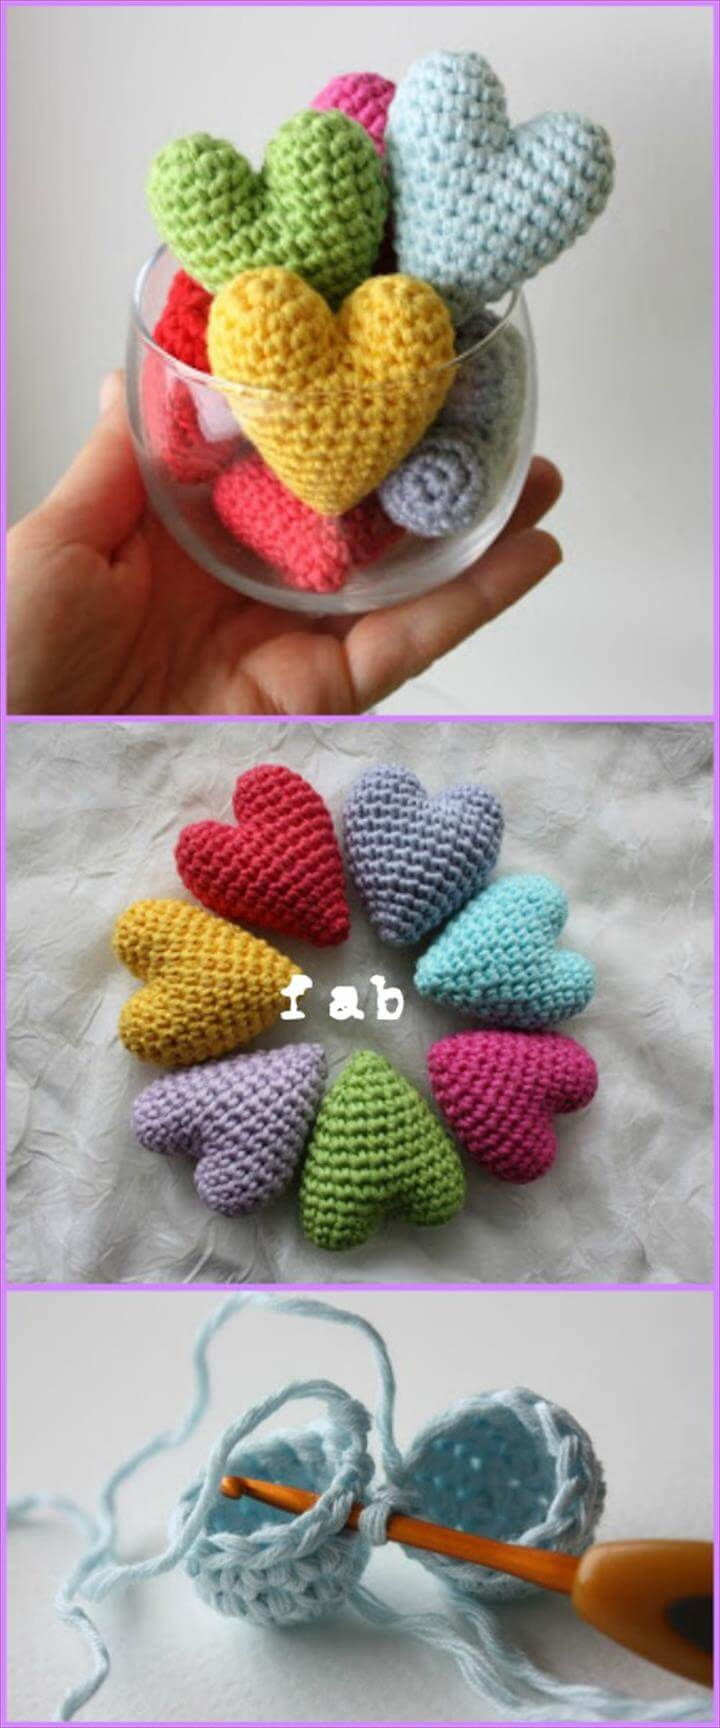 Crochet Heart Amigurumi Free Patterns